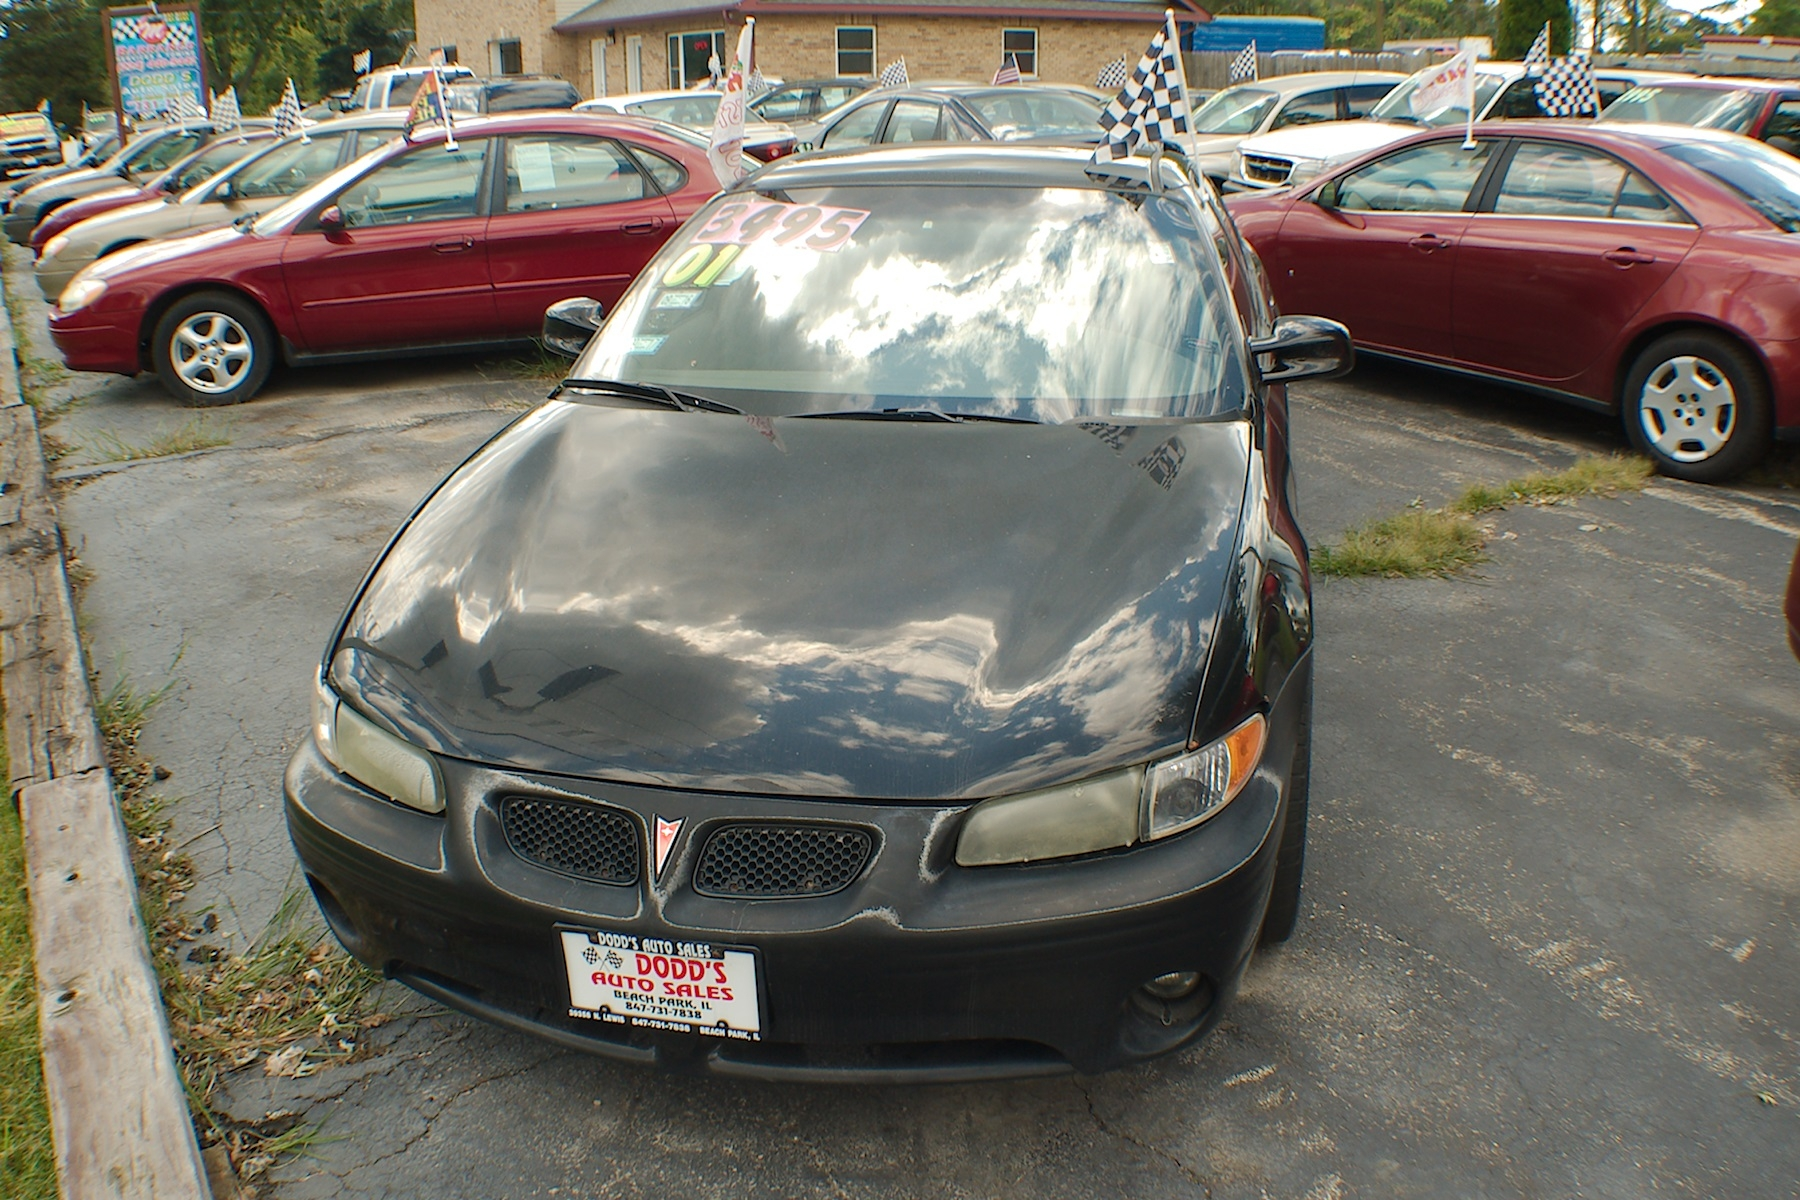 2001 Pontiac Grand Prix SE Black Sedan Used Car Sale Gurnee Kenosha Mchenry Chicago Illinois